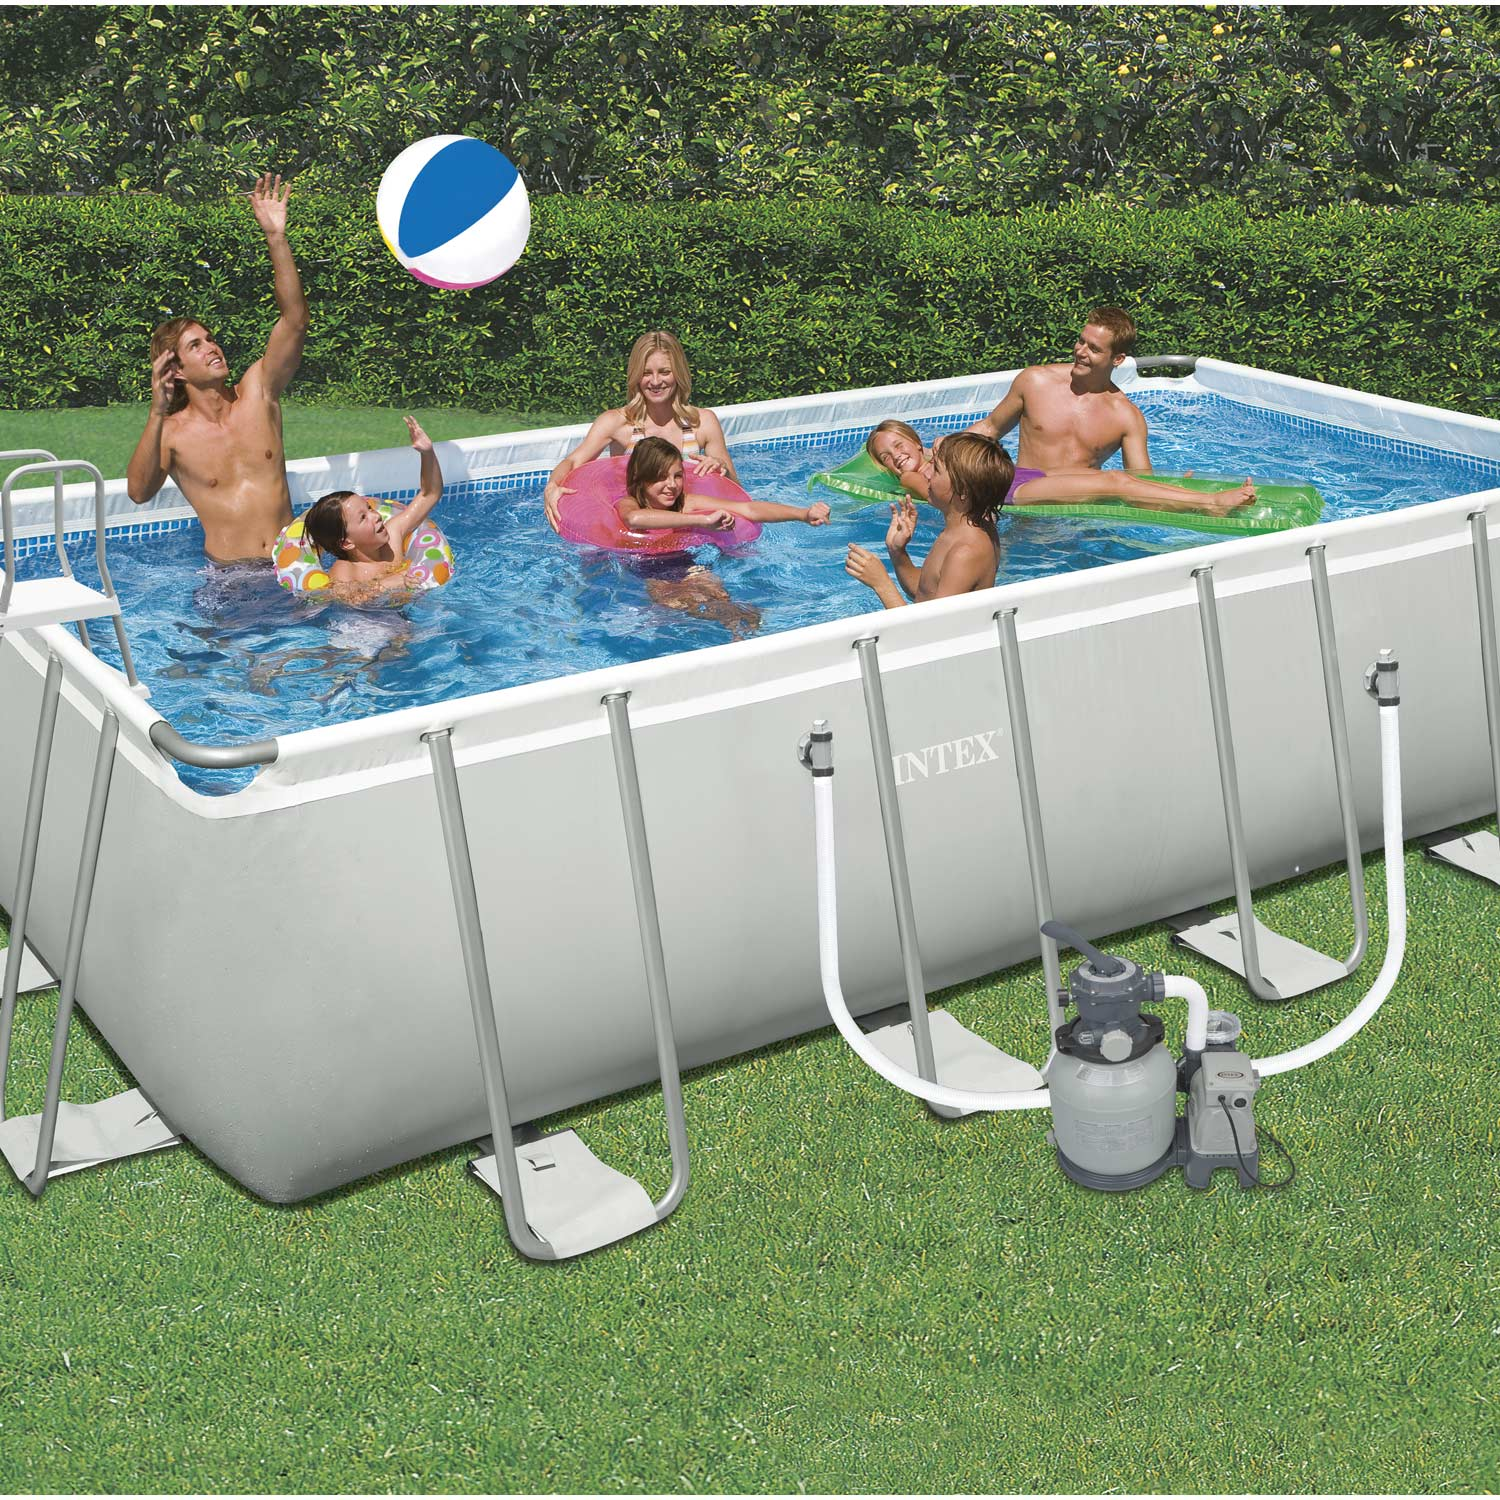 Piscine hors sol autoportante tubulaire intex l x l for Piscine avec pompe